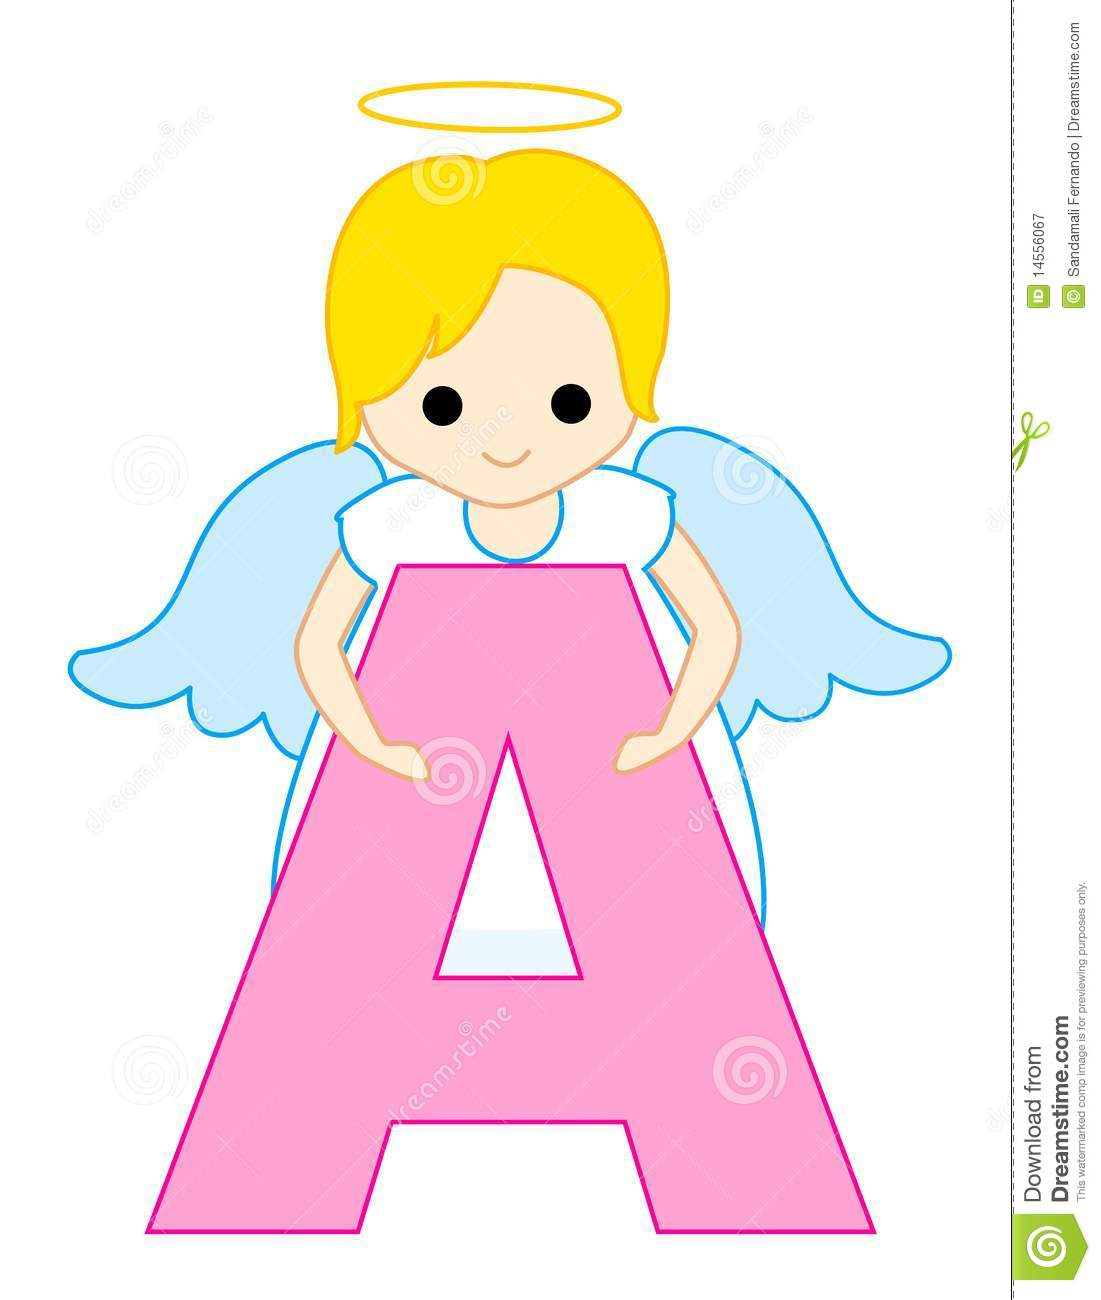 Cute Baby Angel Wallpaper Alphabet Letter A Stock Vector Image Of Education